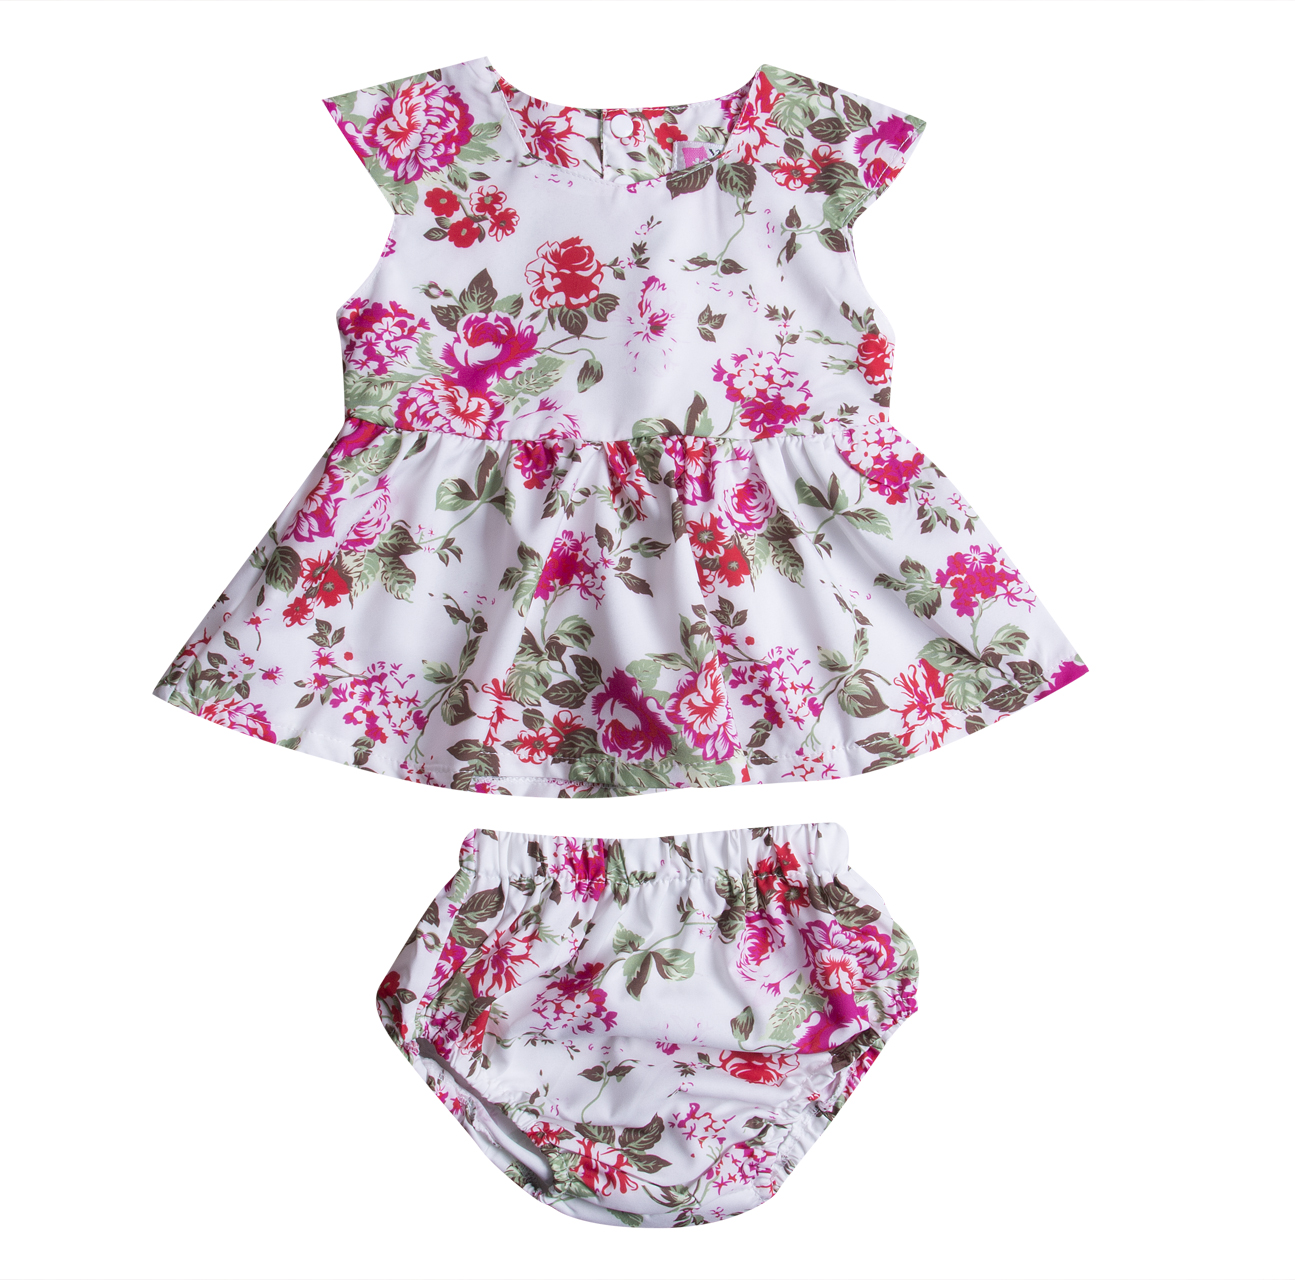 Cute Newborn Toddler Infant Baby Girl Clothing Outfits Sleeveless Loose Floral Tops Shorts Bottoms Two Piece Set cute toddler baby girl cotton floral leopard bodysuit shoe hairband 3pcs outfits set summer newborn baby girl clothes